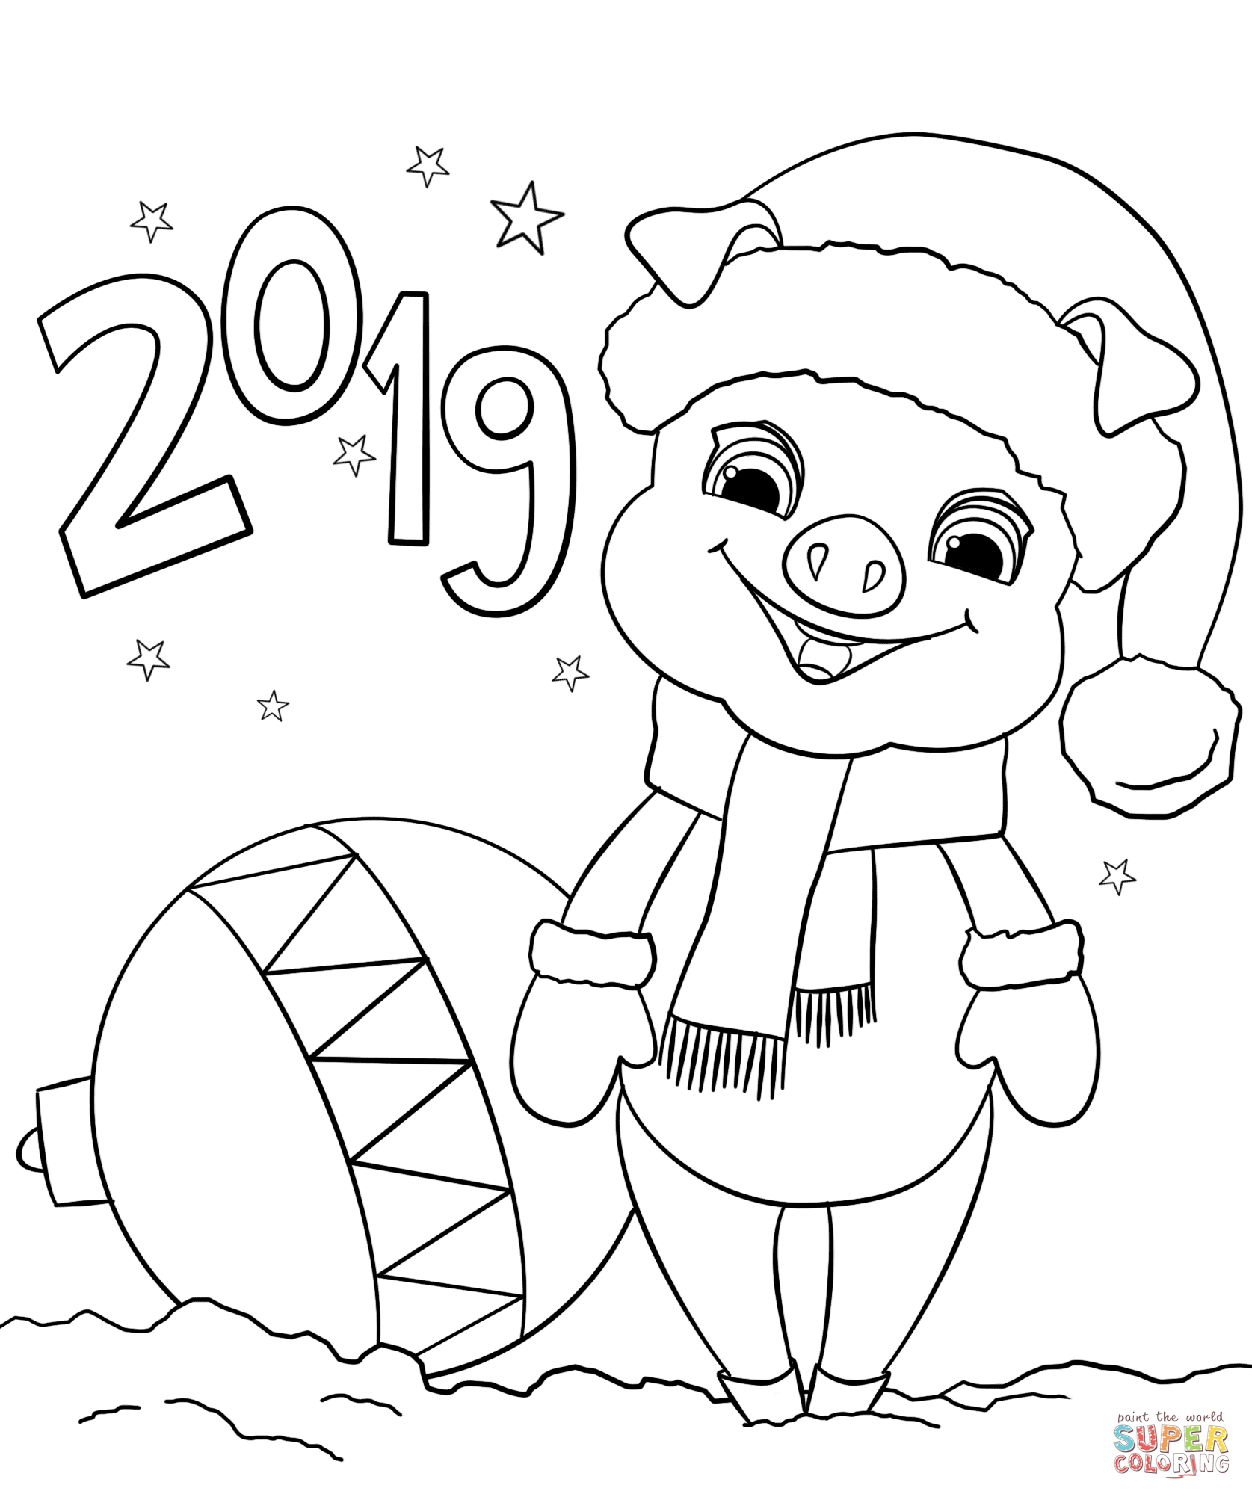 2019 Happy New Year Coloring Page Free Printable Coloring Pages